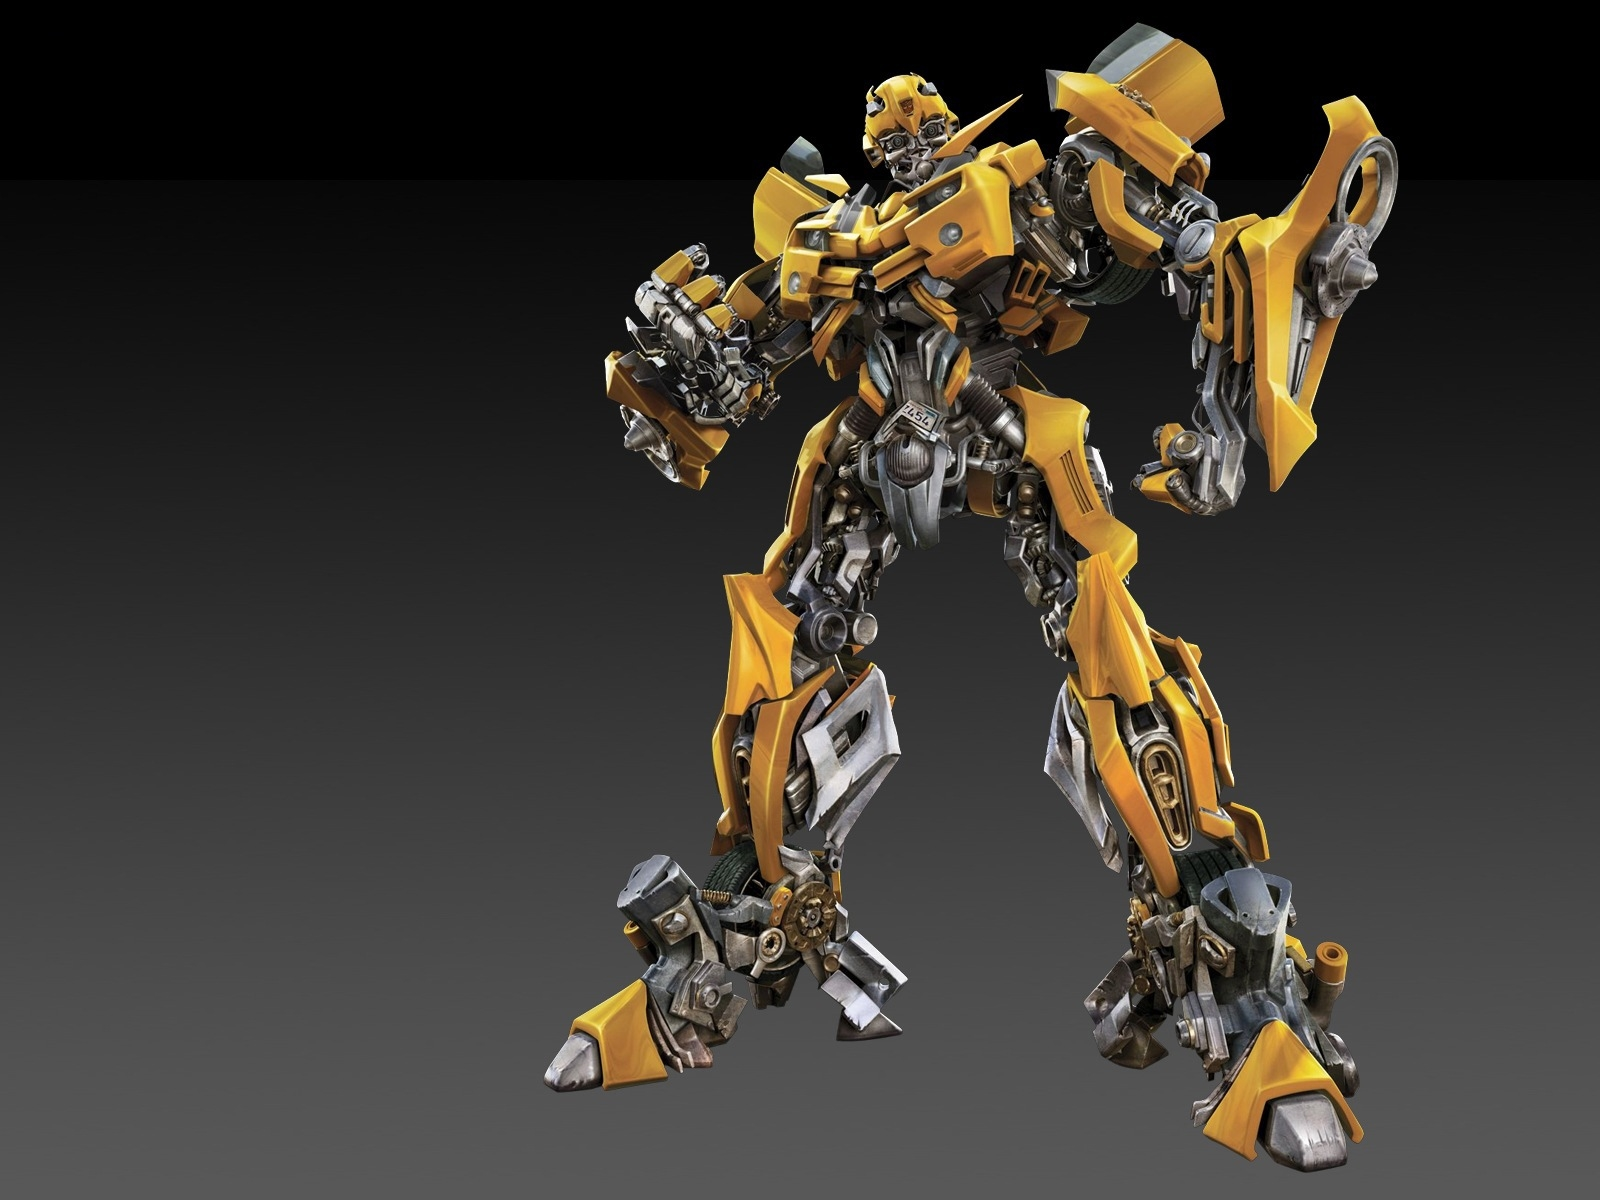 bumblebee 3d autobots transformers hd wallpaper